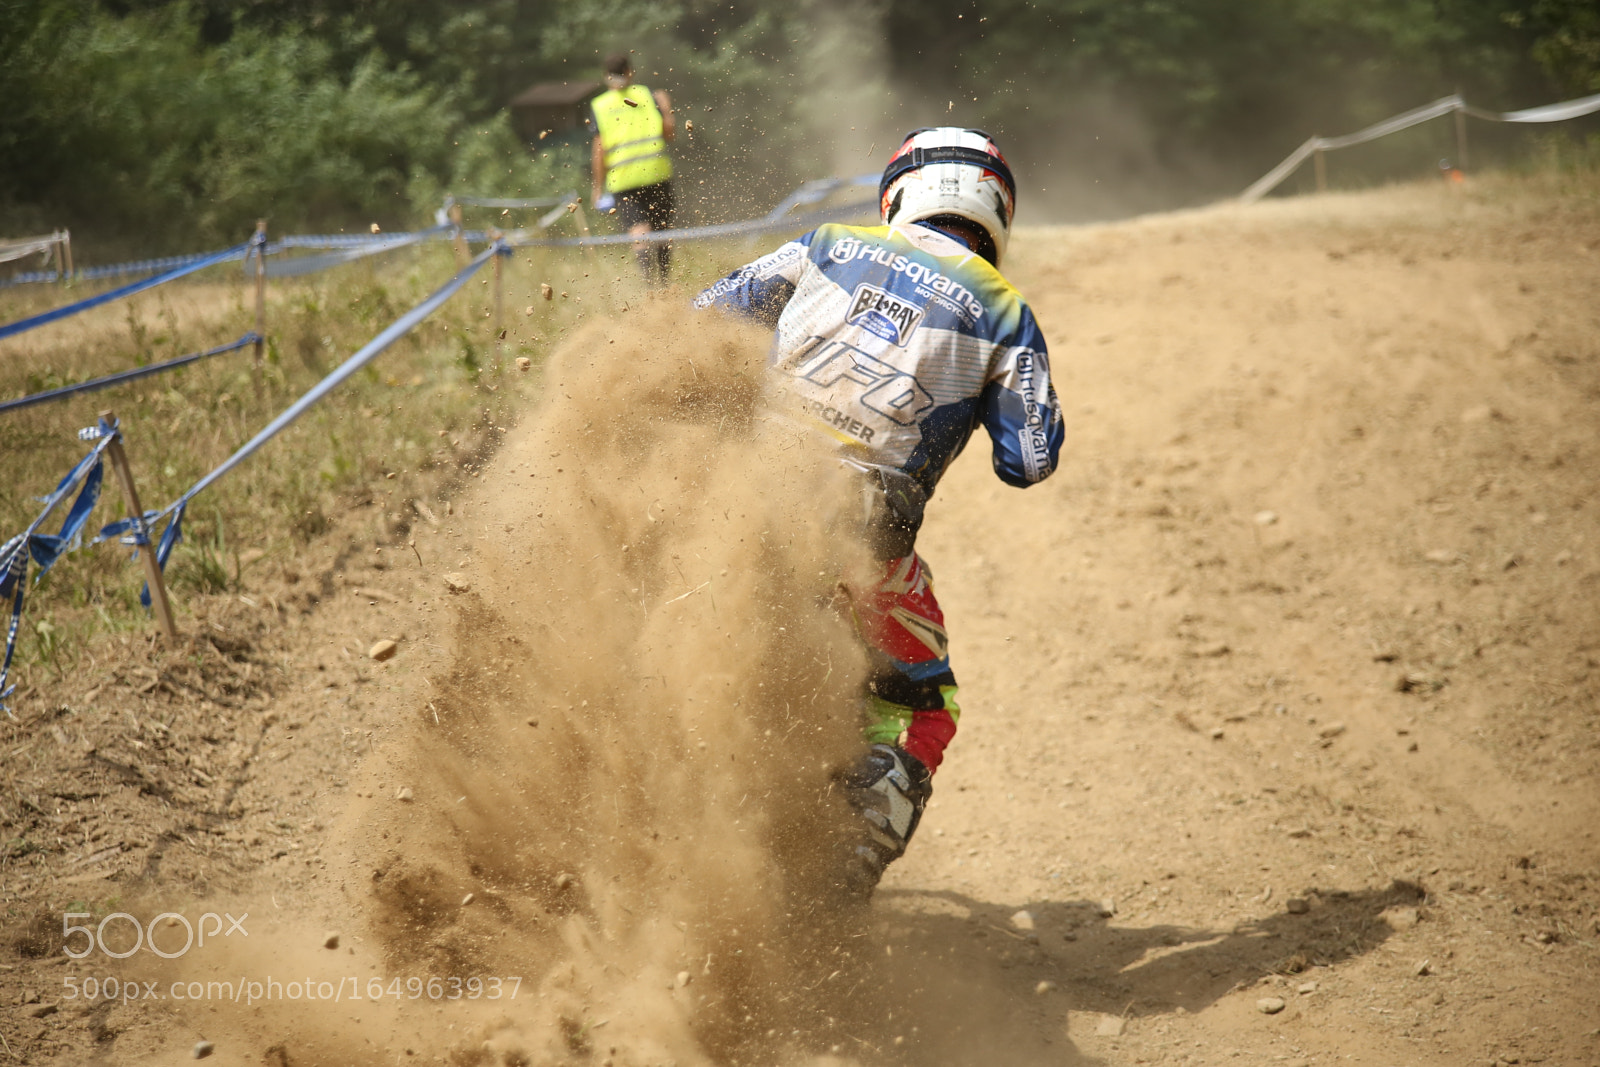 Offroad racing 2, Canon EOS 6D, Canon EF 35-135mm f/3.5-4.5